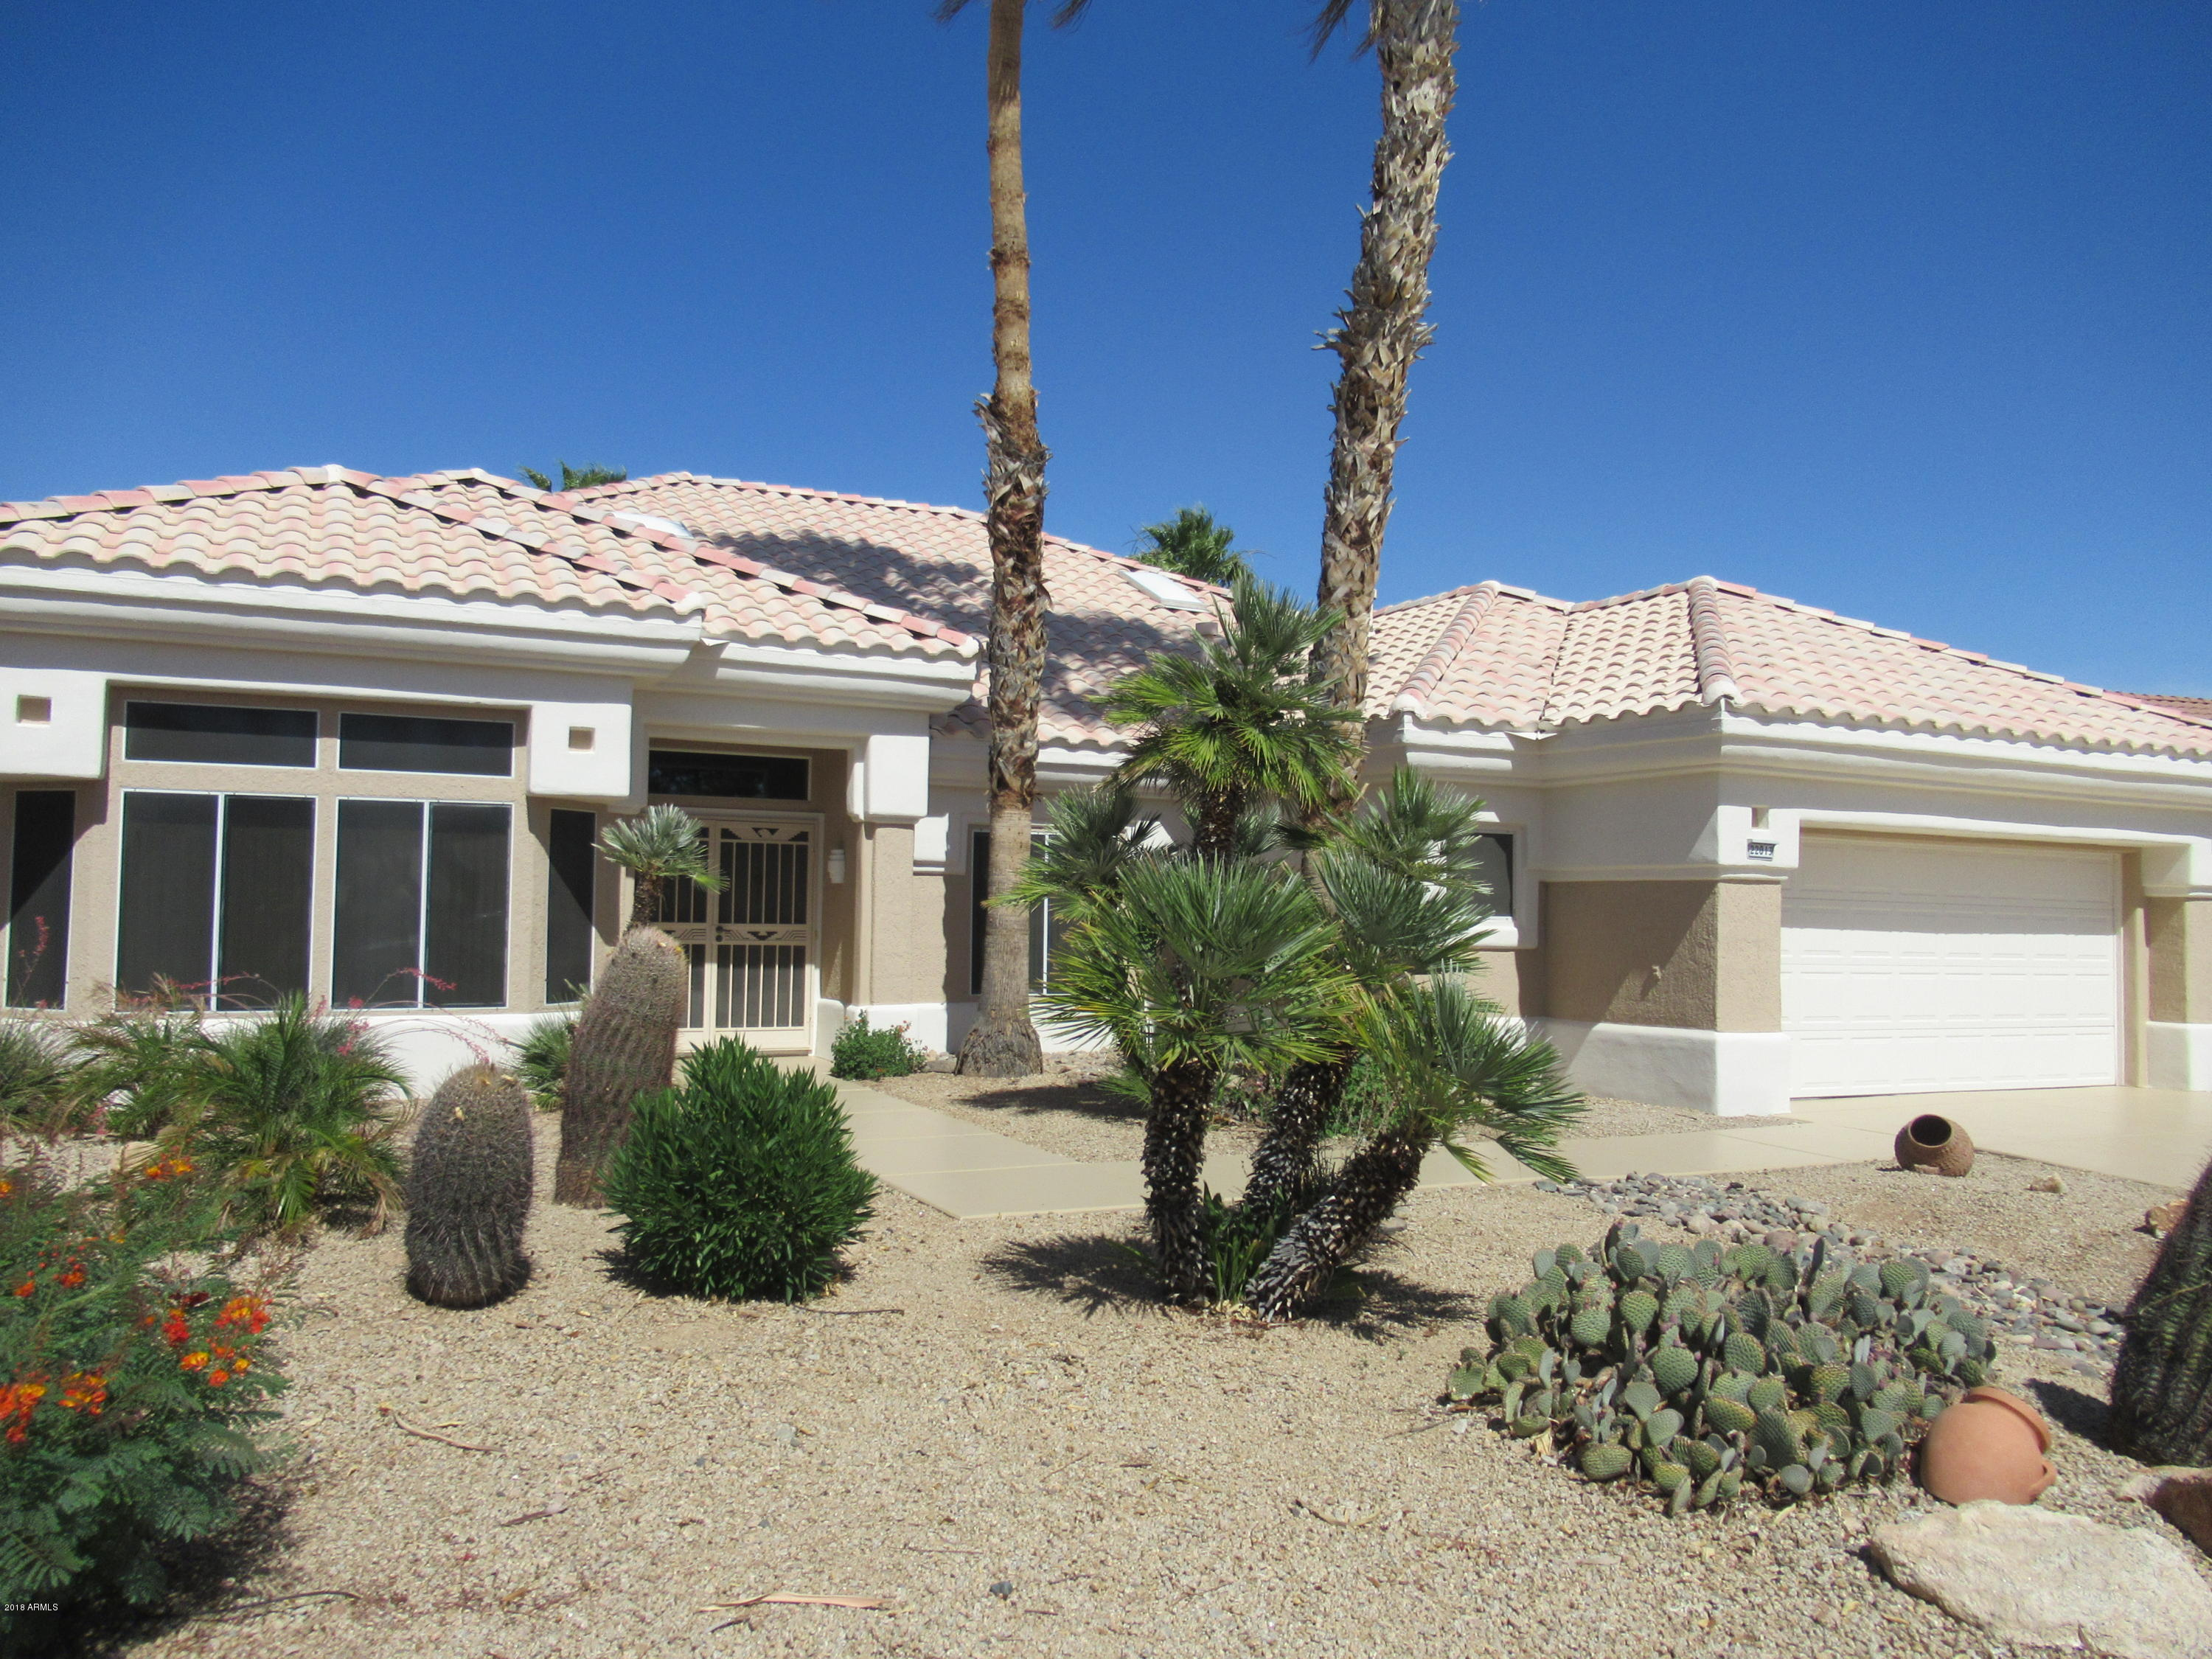 22013 N VENADO DRIVE, SUN CITY WEST, AZ 85375